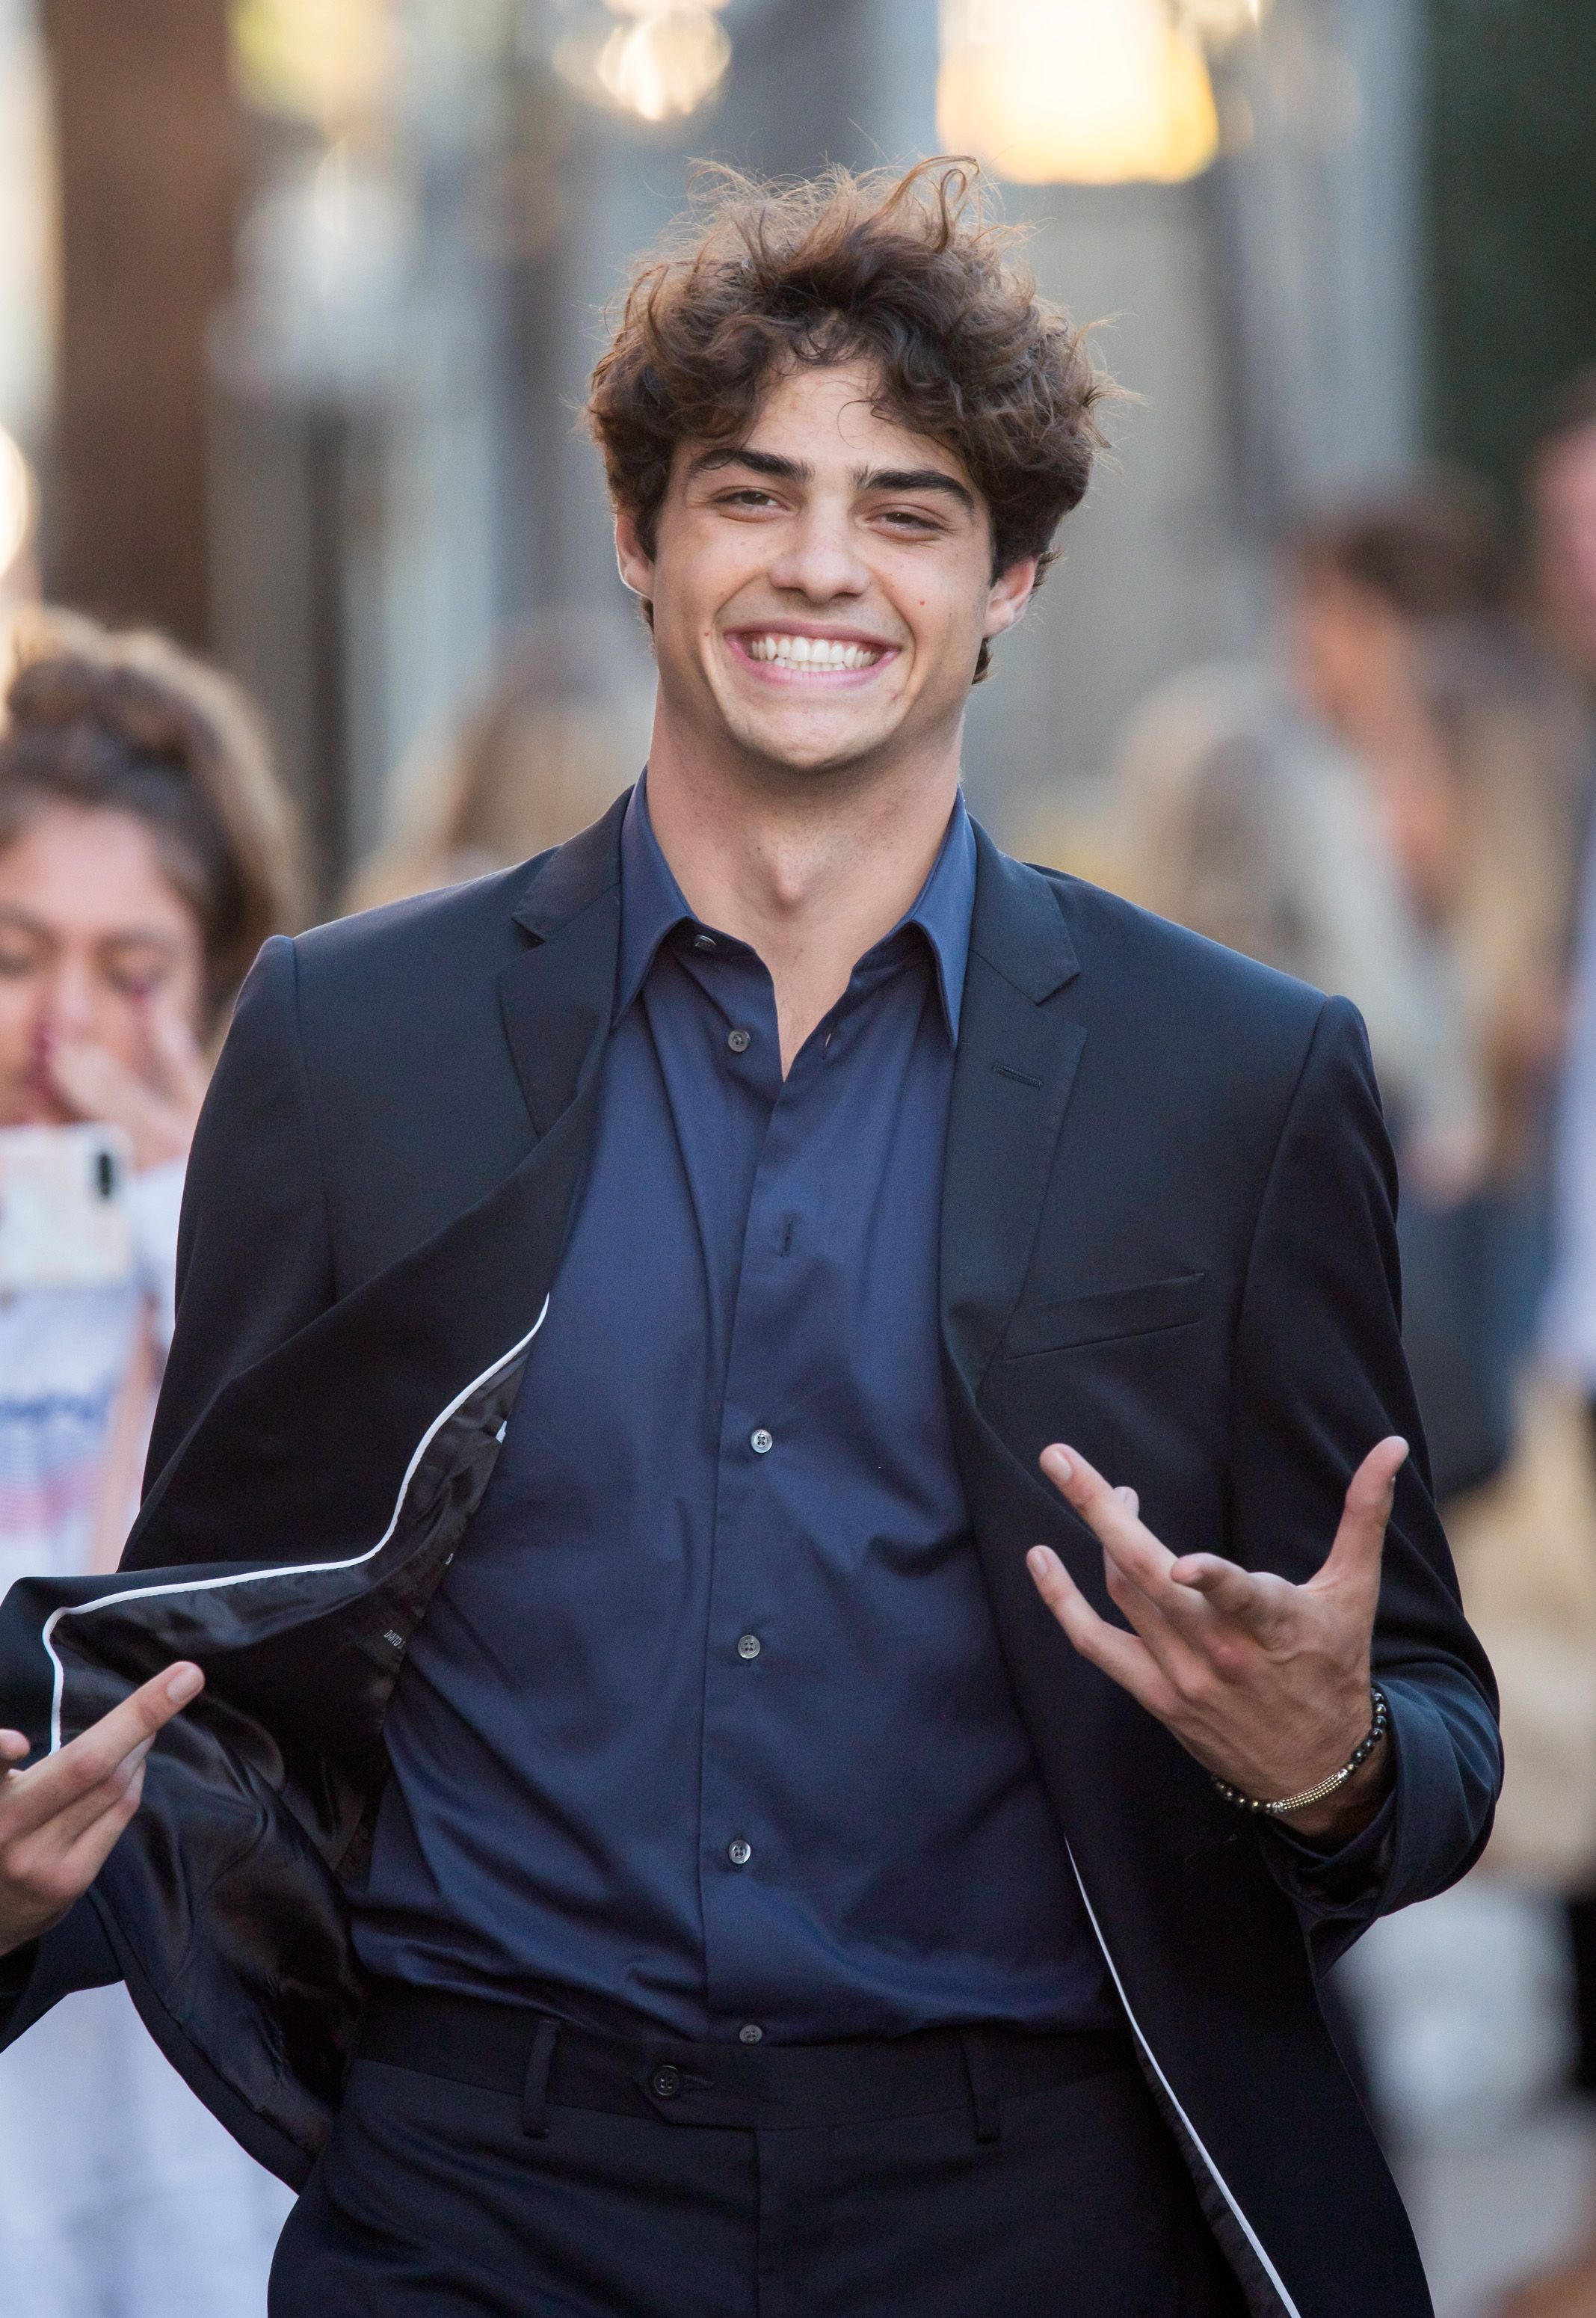 e93025d4a Who is Noah Centineo From 'To All the Boys I've Loved Before'? -36 Facts  About Peter Kavinsky IRL